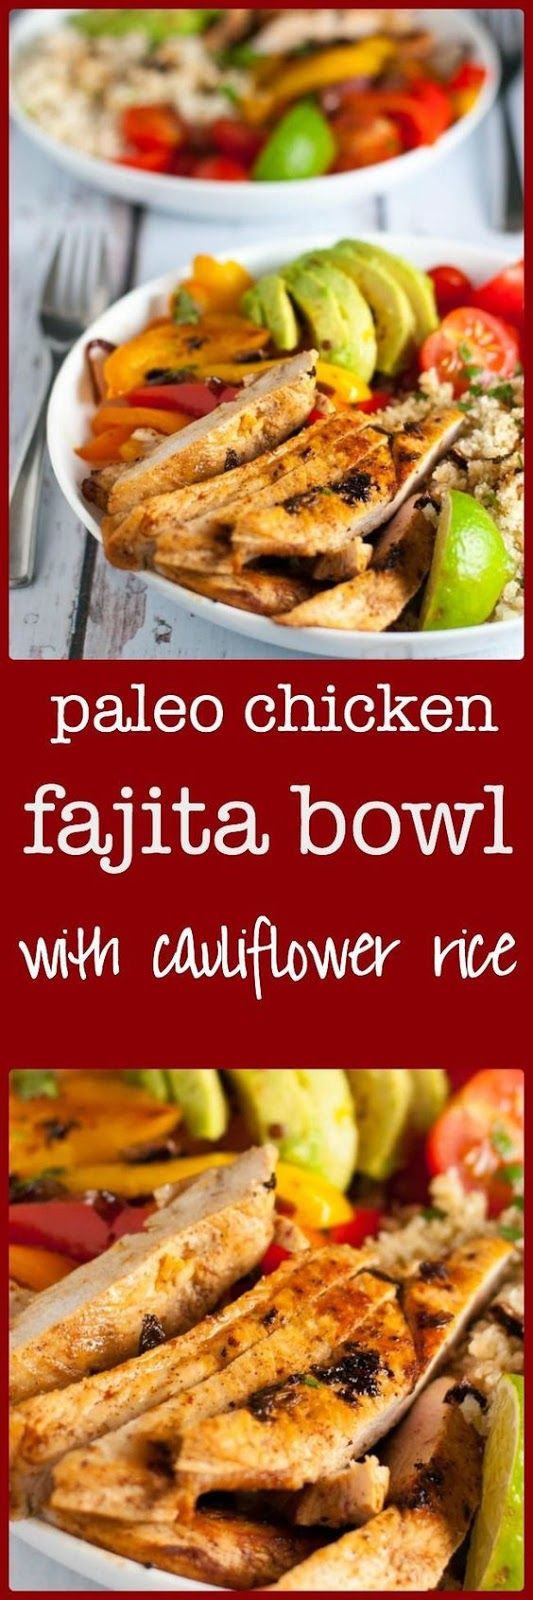 Chicken Fajita Bowl with Cauliflower Rice